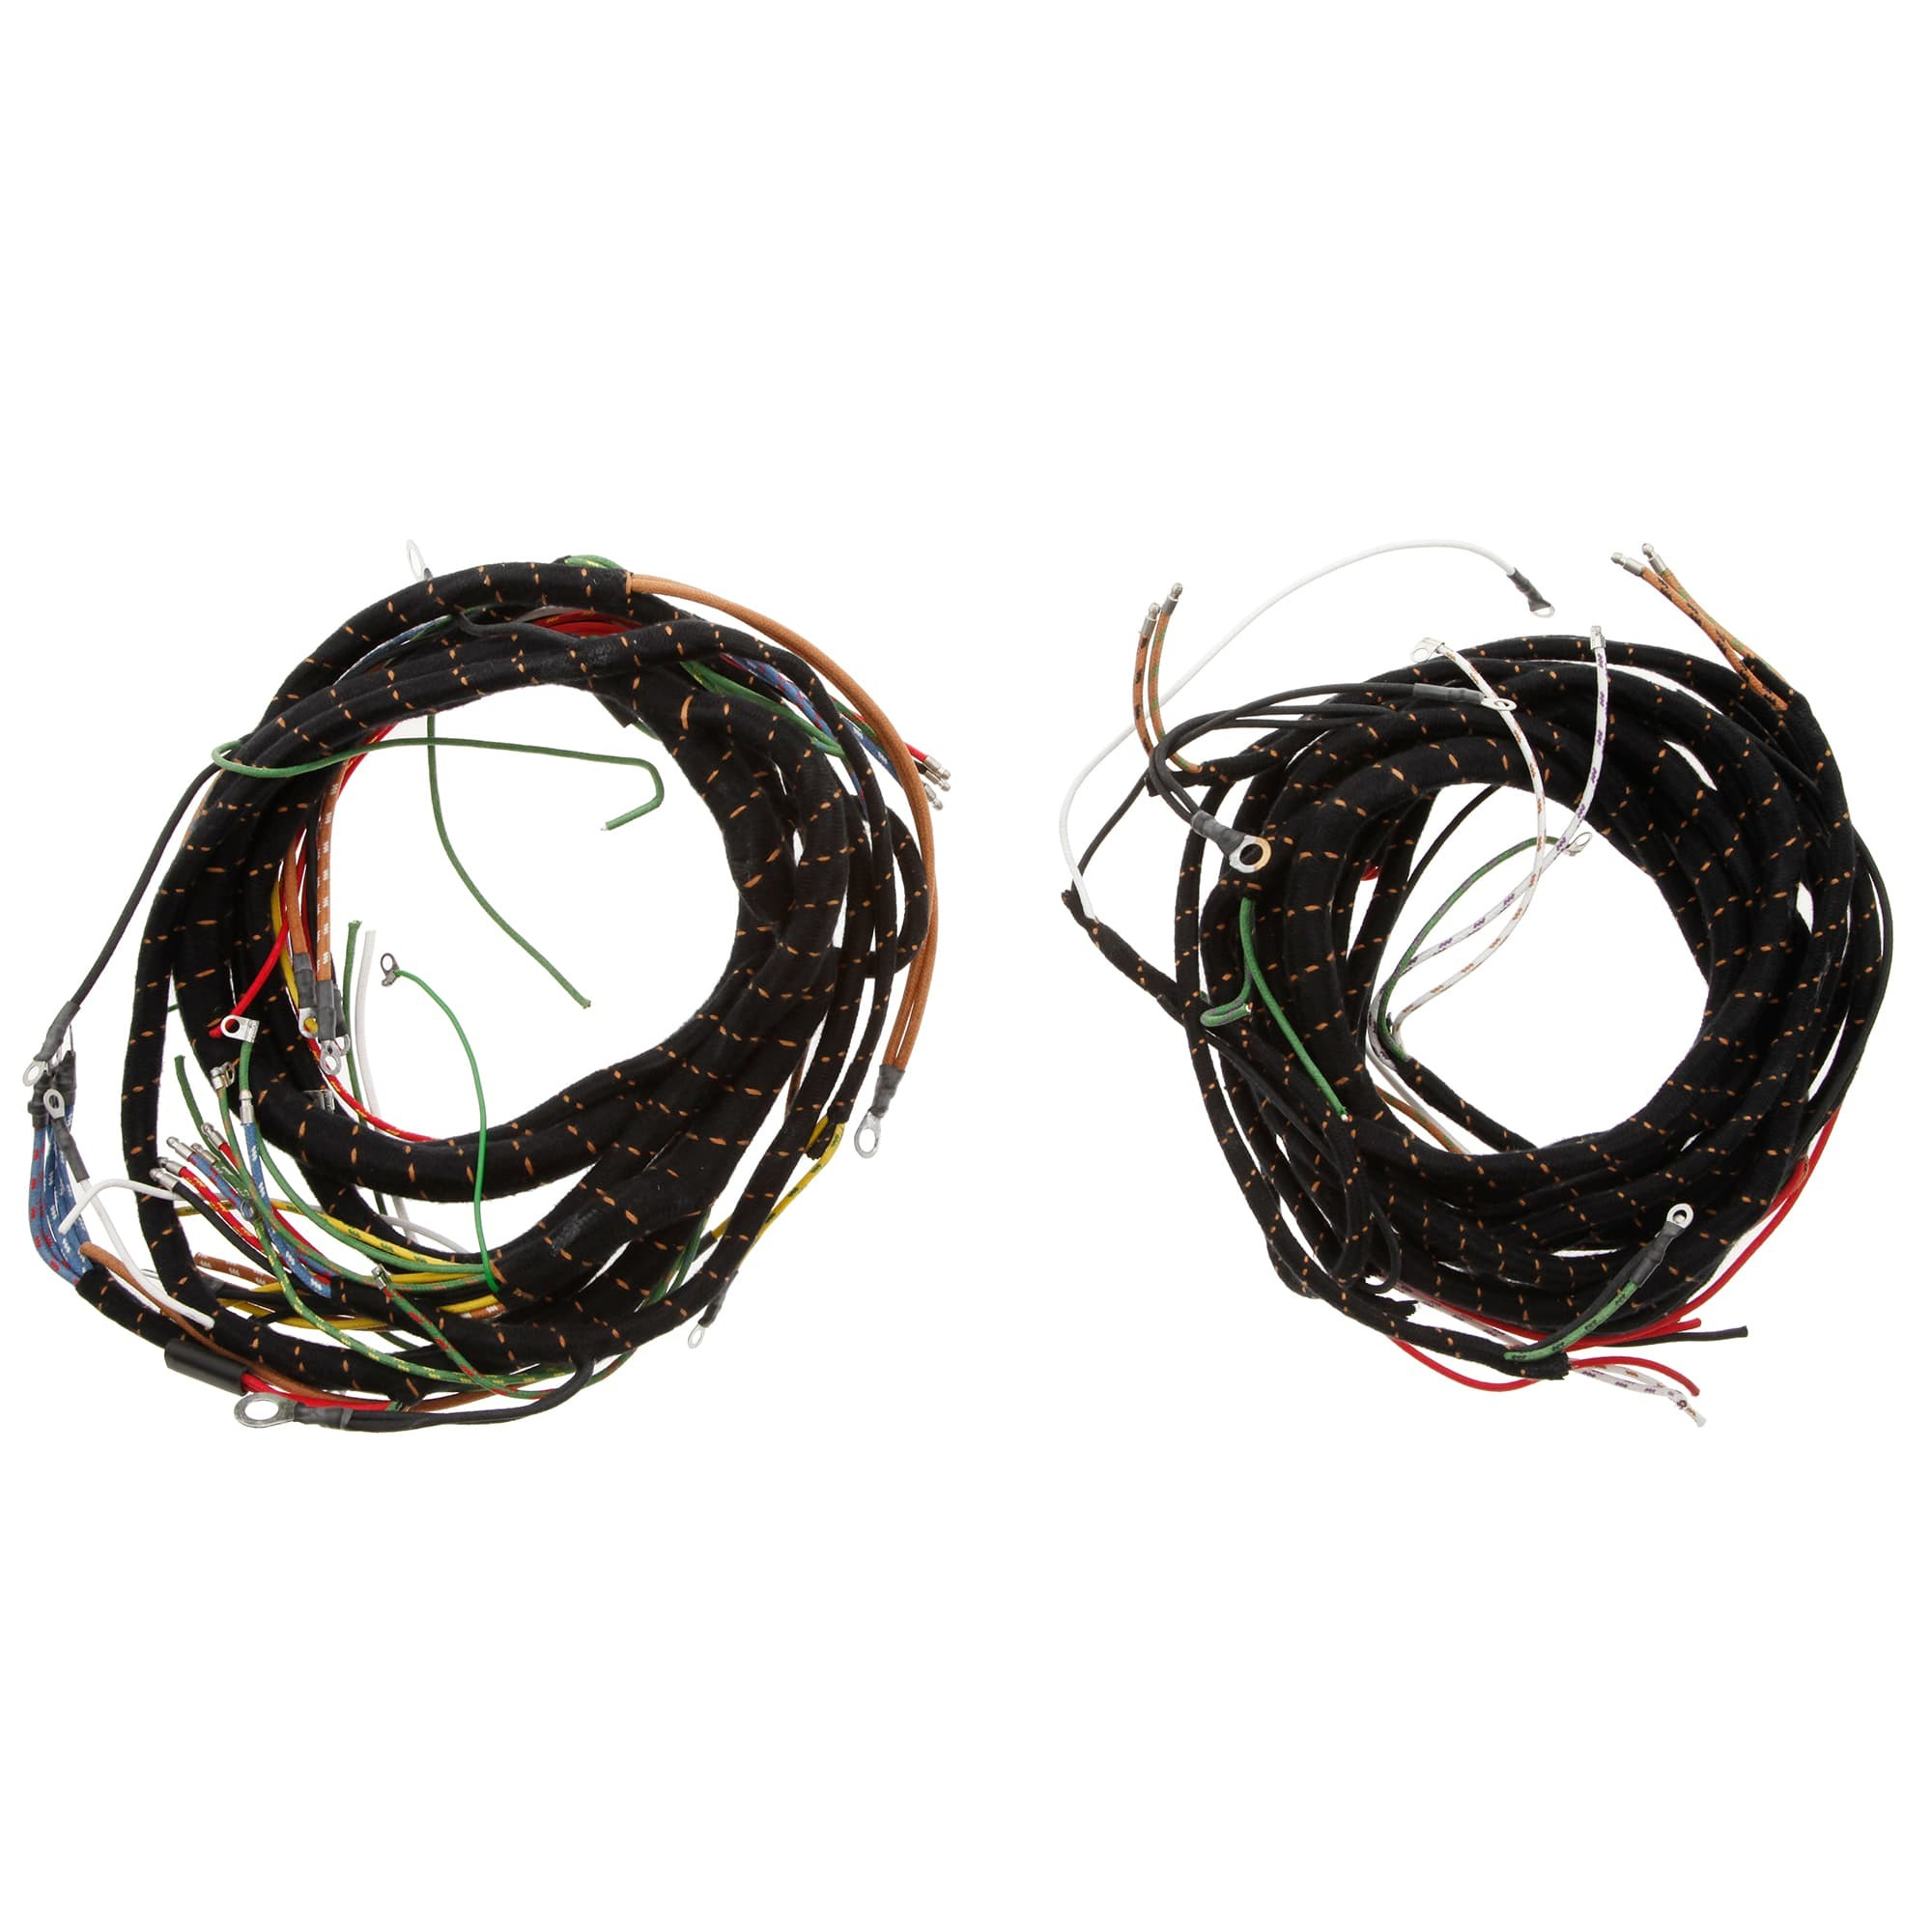 357 090 Wiring Harness Lacquer Braid Moss Motors